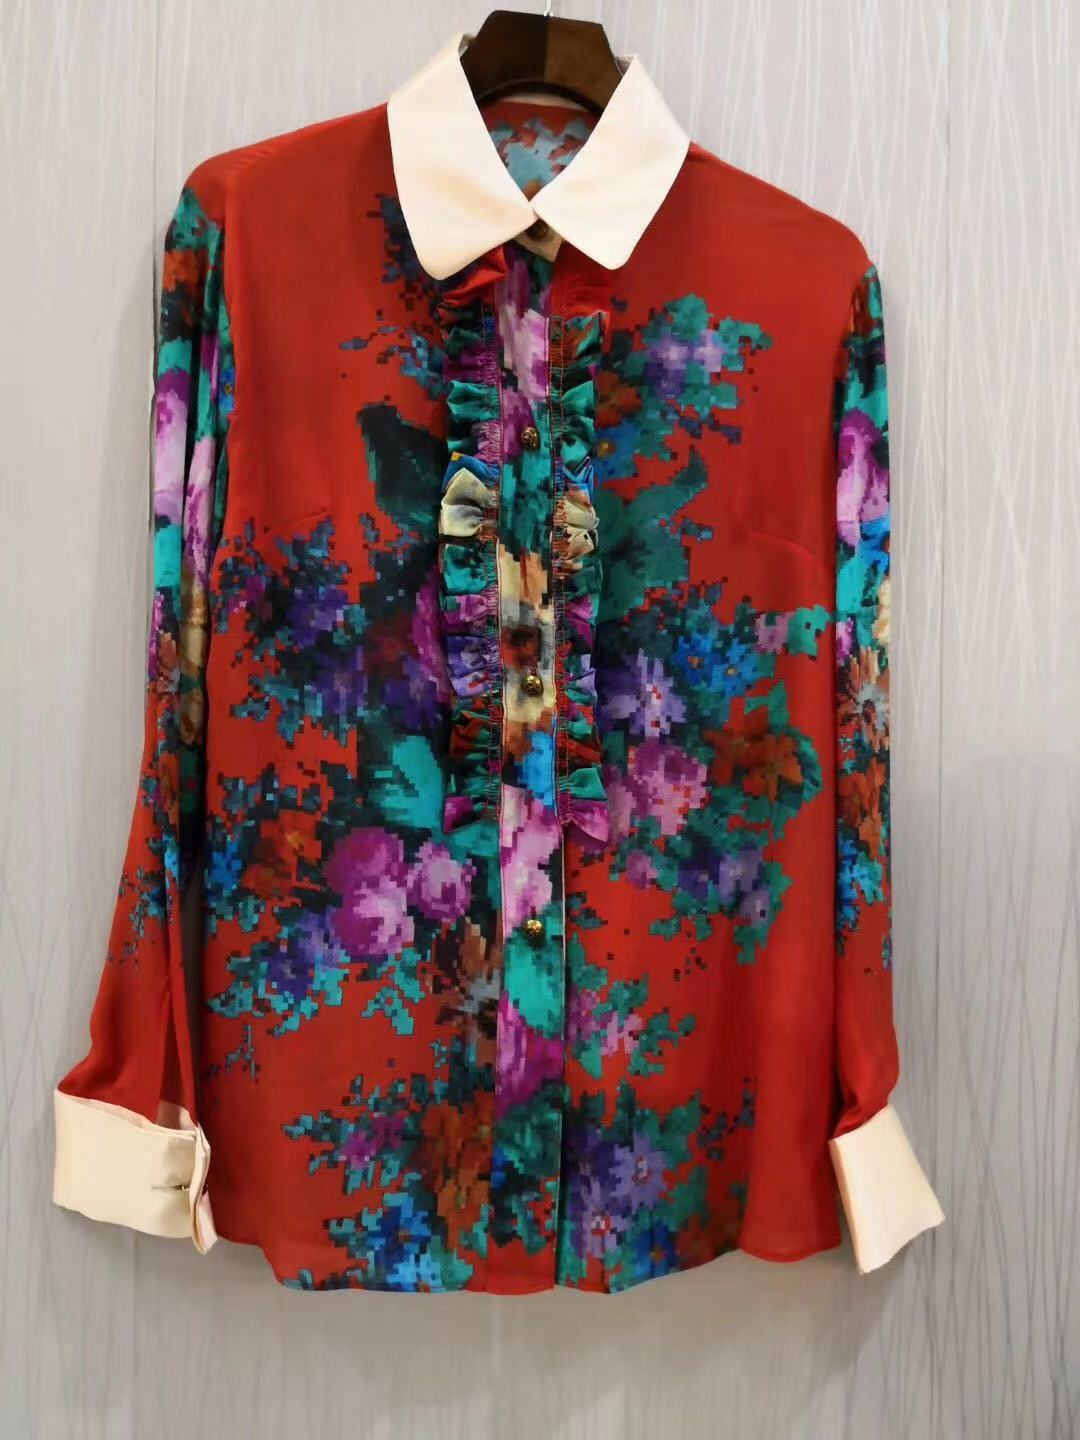 NEW offer feedback mulberry silk color positioning spend long silk blouse S M